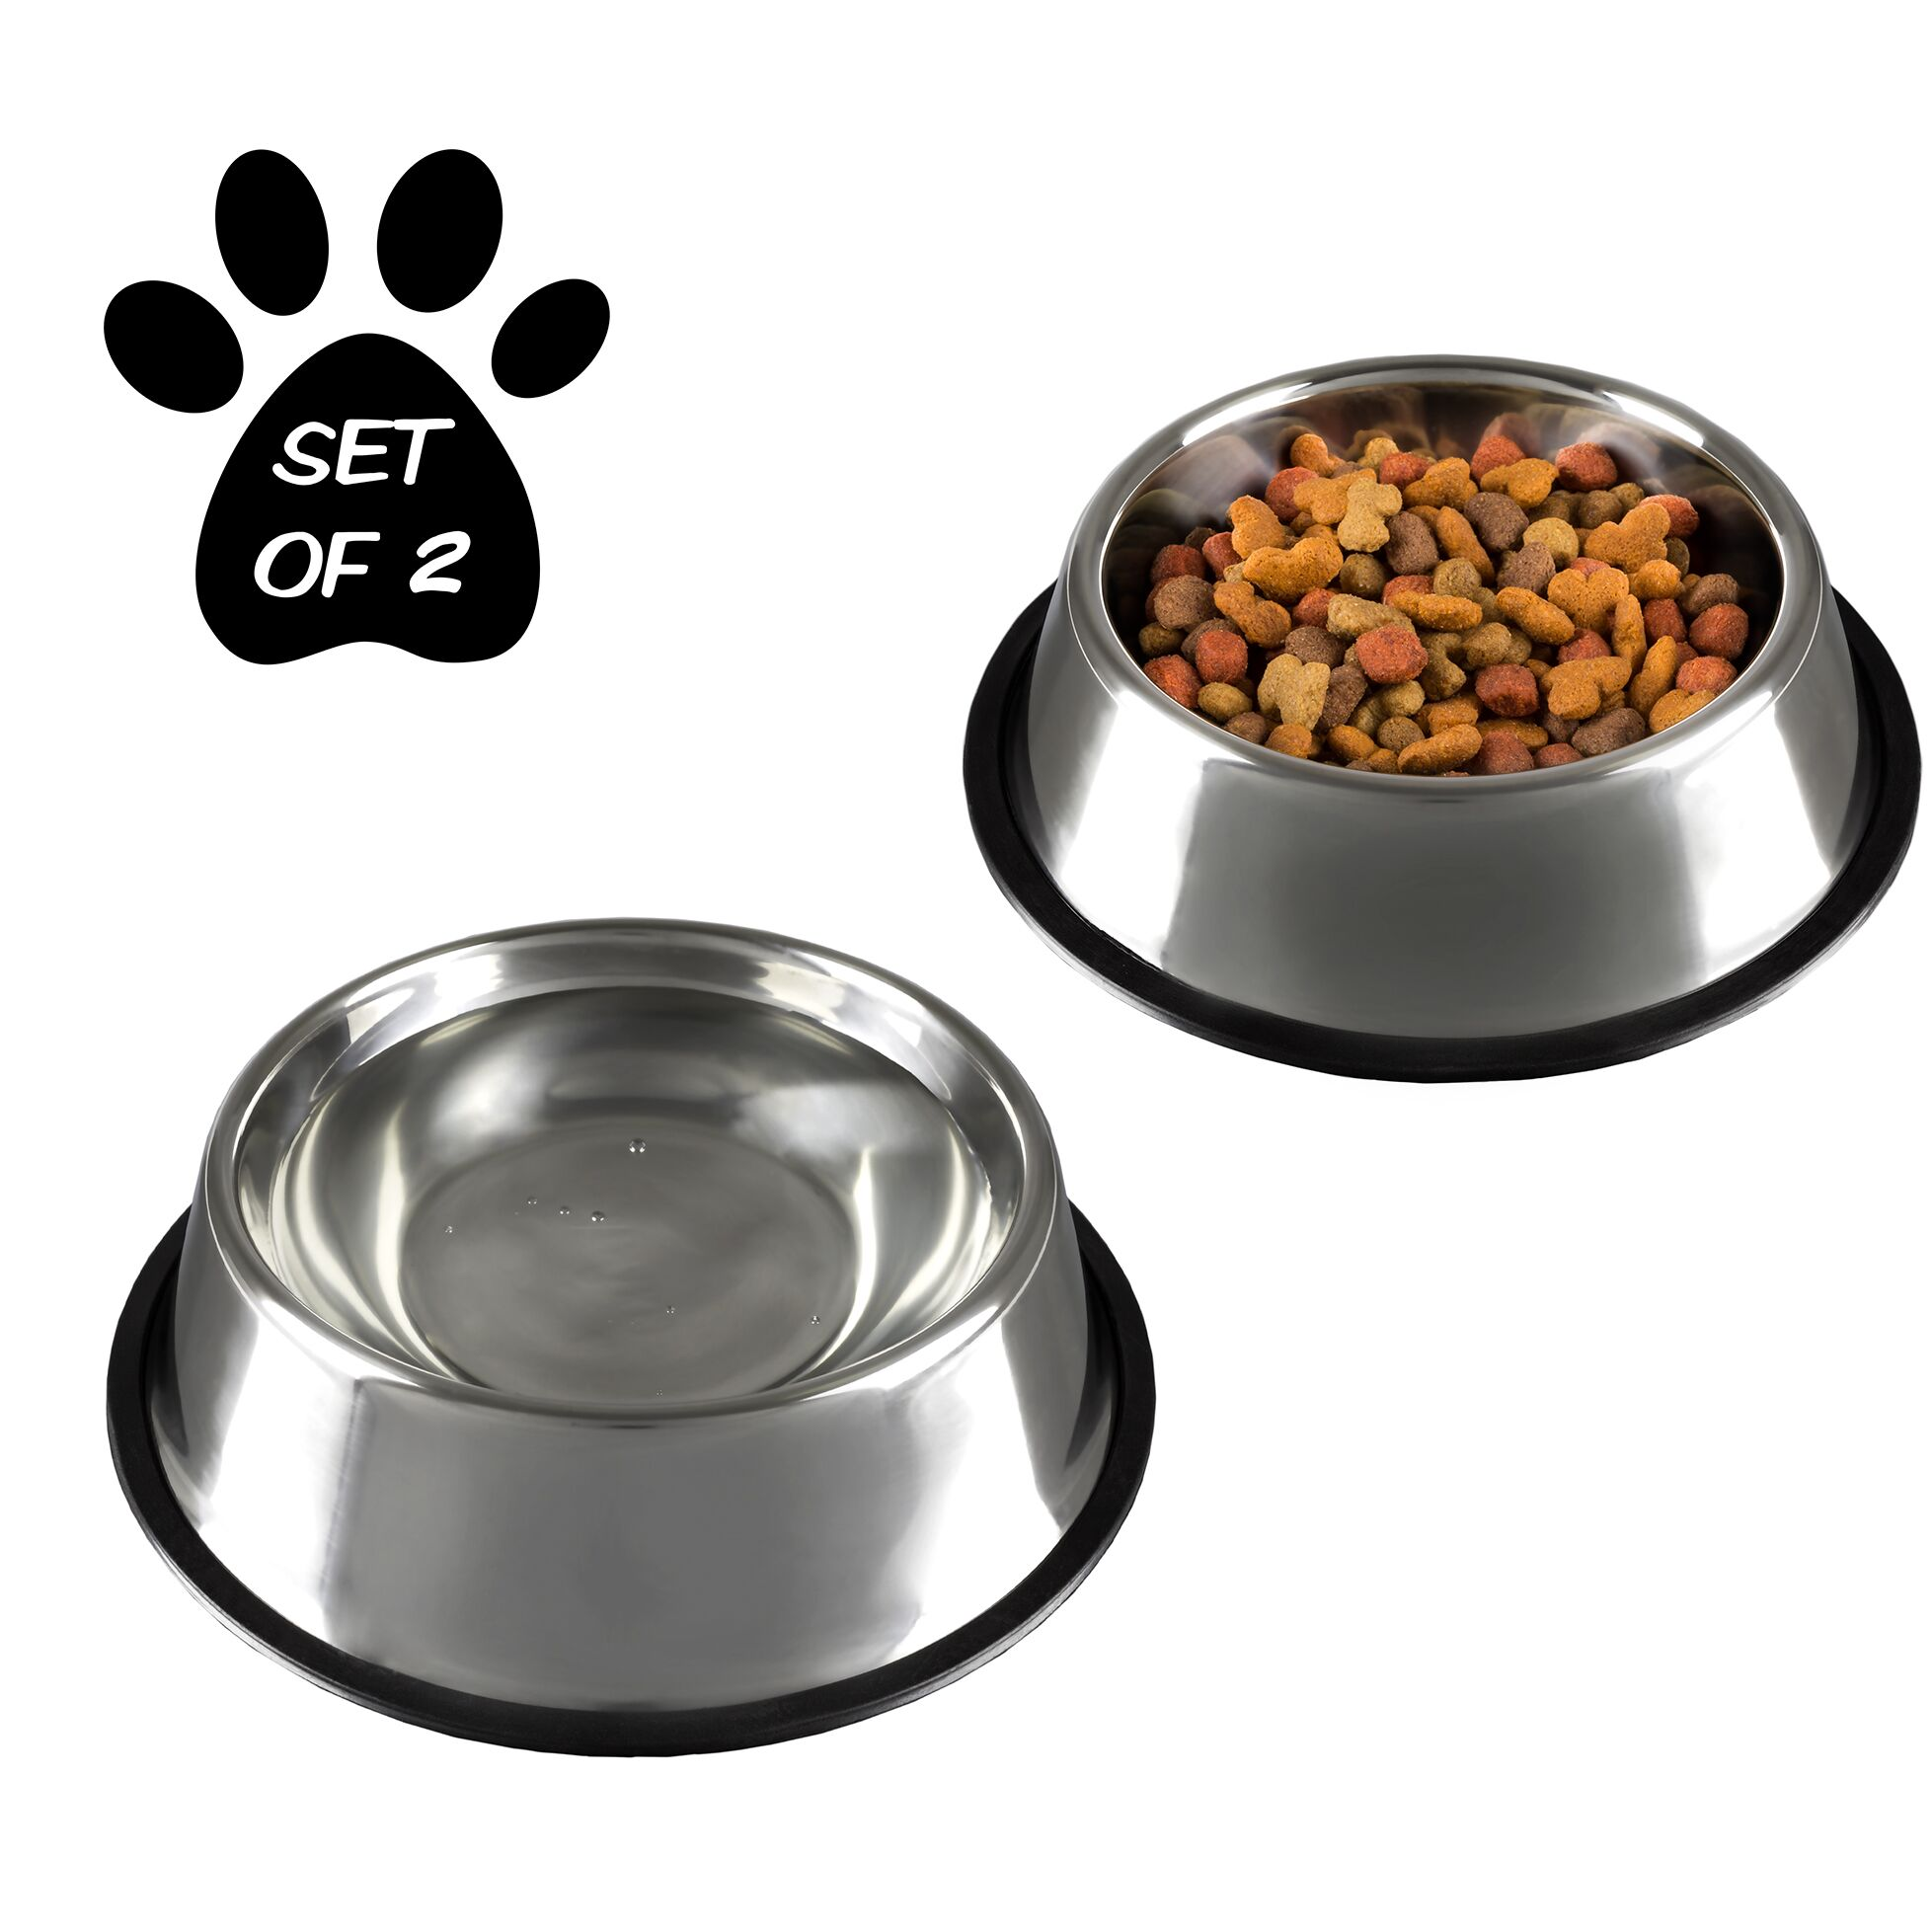 Stainless Steel Non-Slip Pet Bowl Size: 28 oz